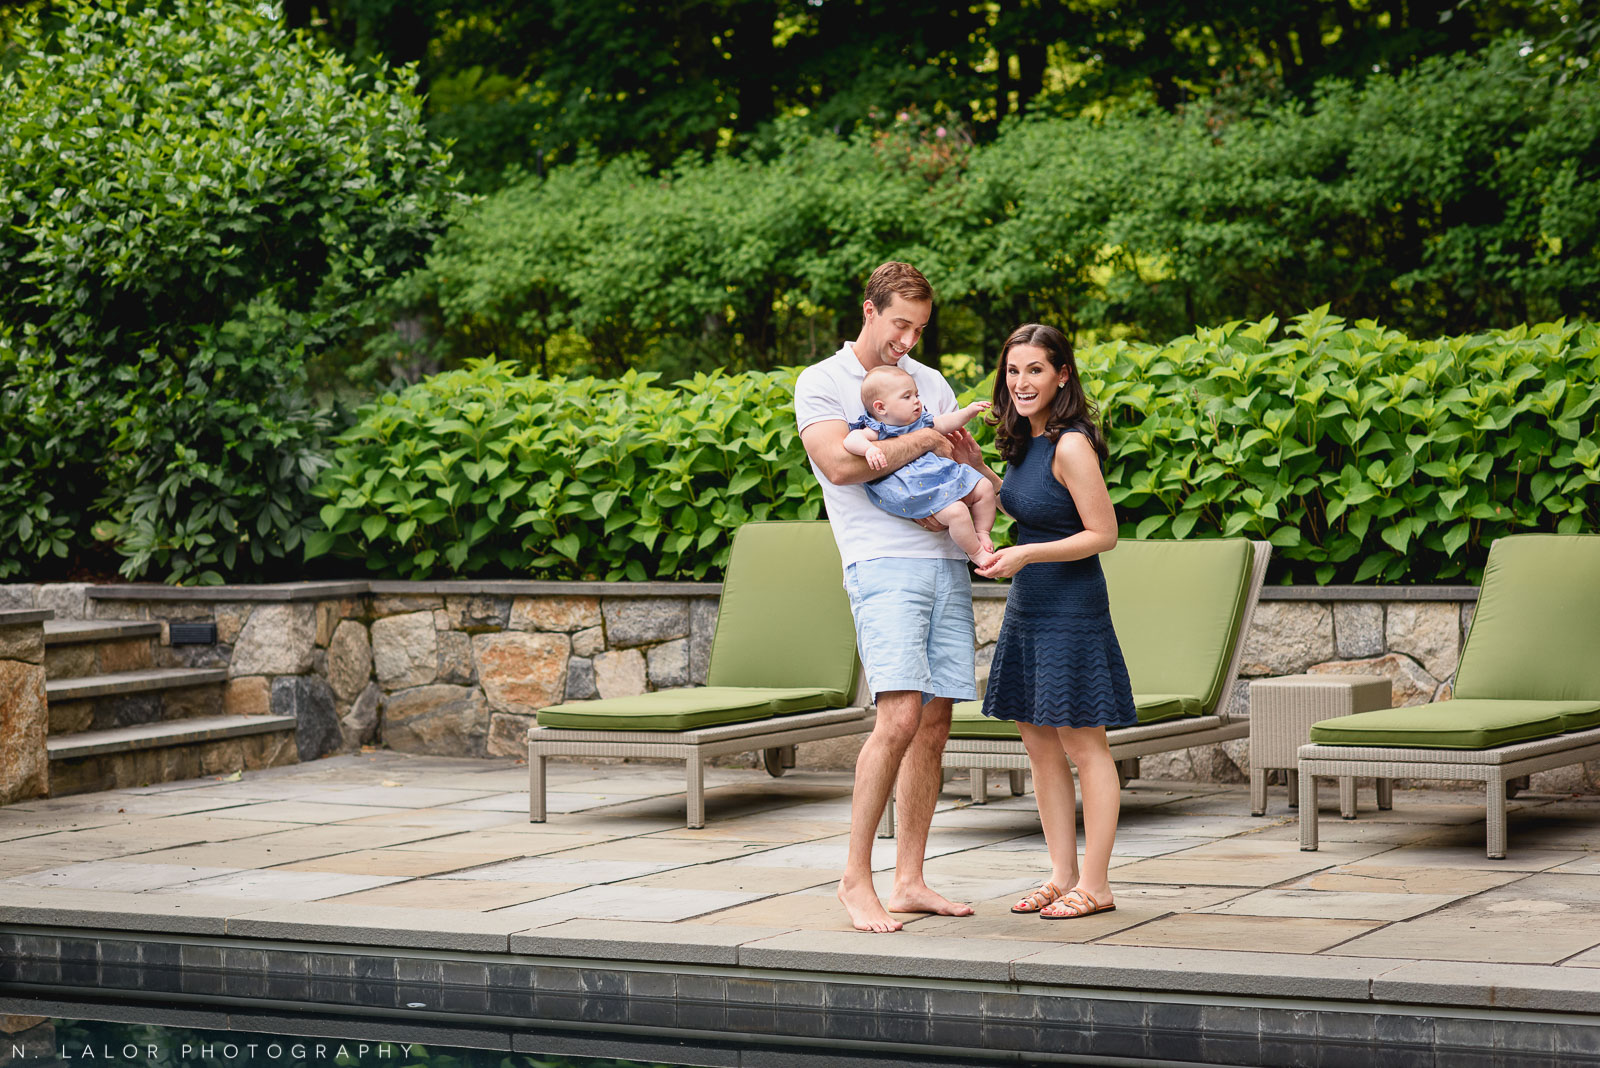 Happy family by the pool in the back yard. In-home family session with N. Lalor Photography in New Canaan, CT.